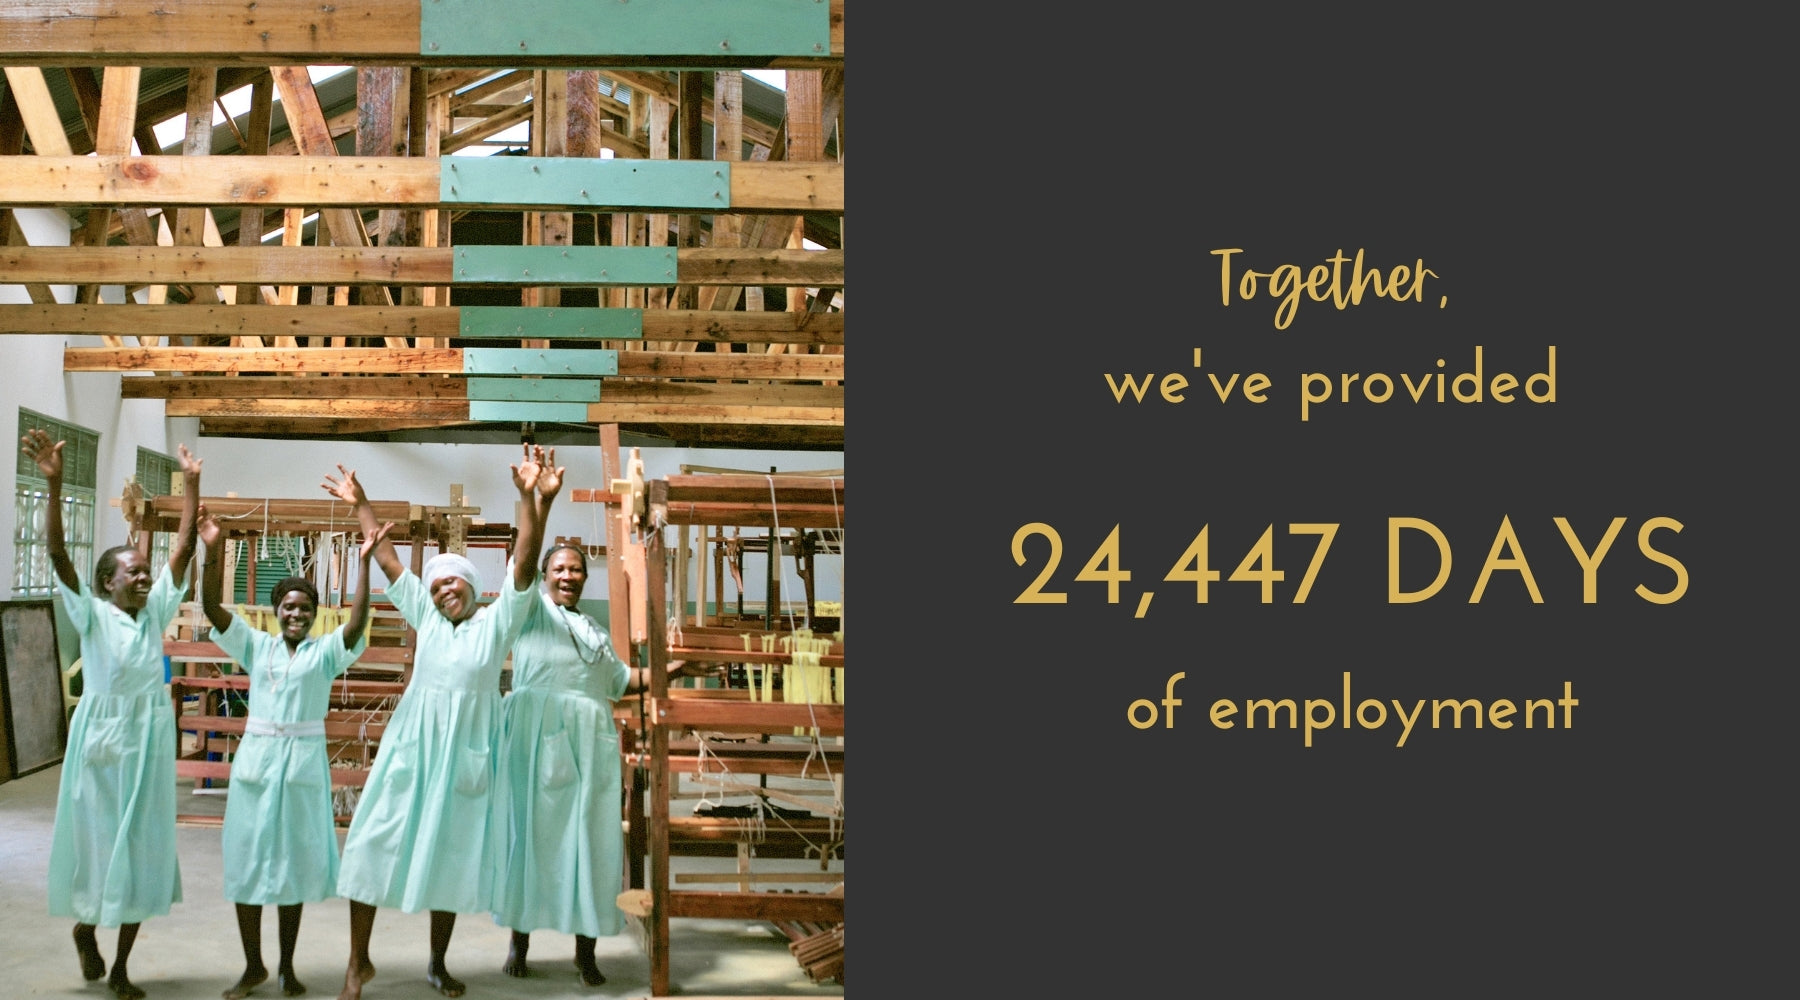 24,447 Days of employment